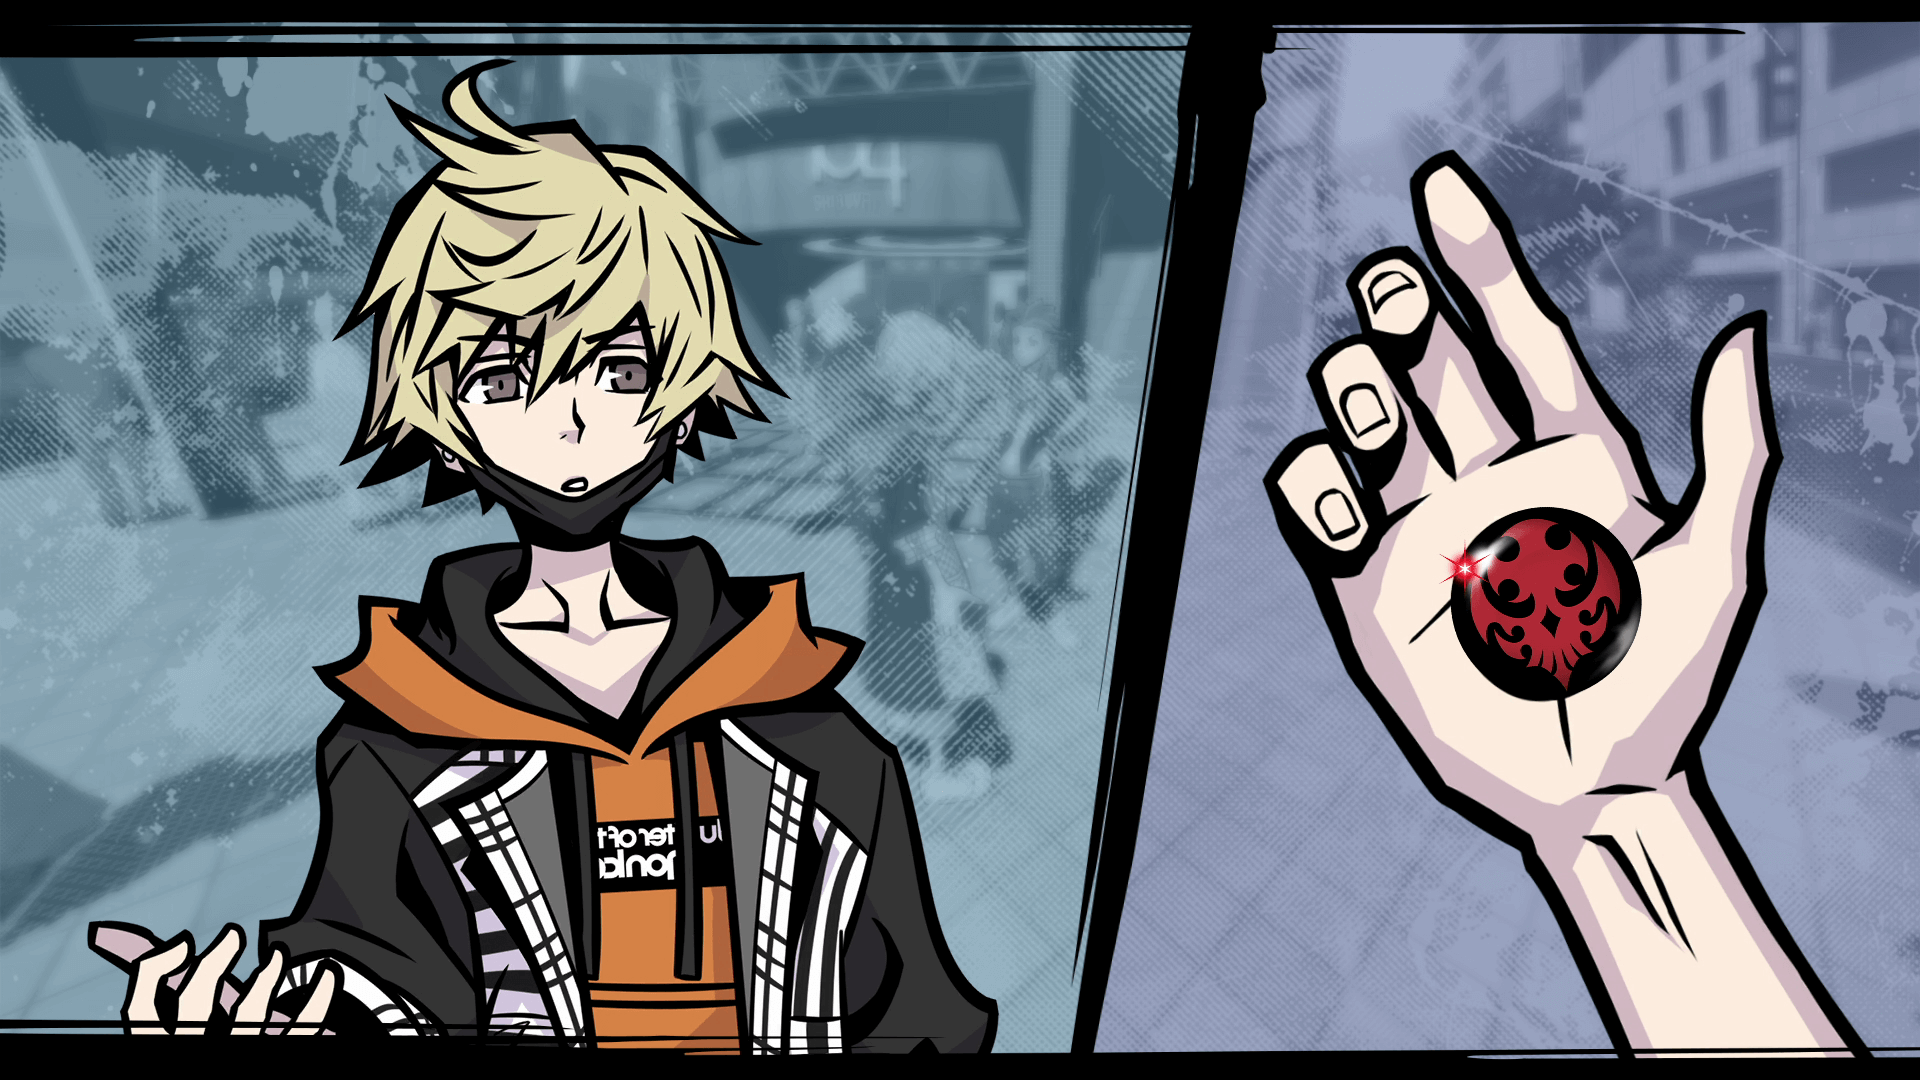 One of the characters in Neo: The World Ends With You looks at a pin in his hand